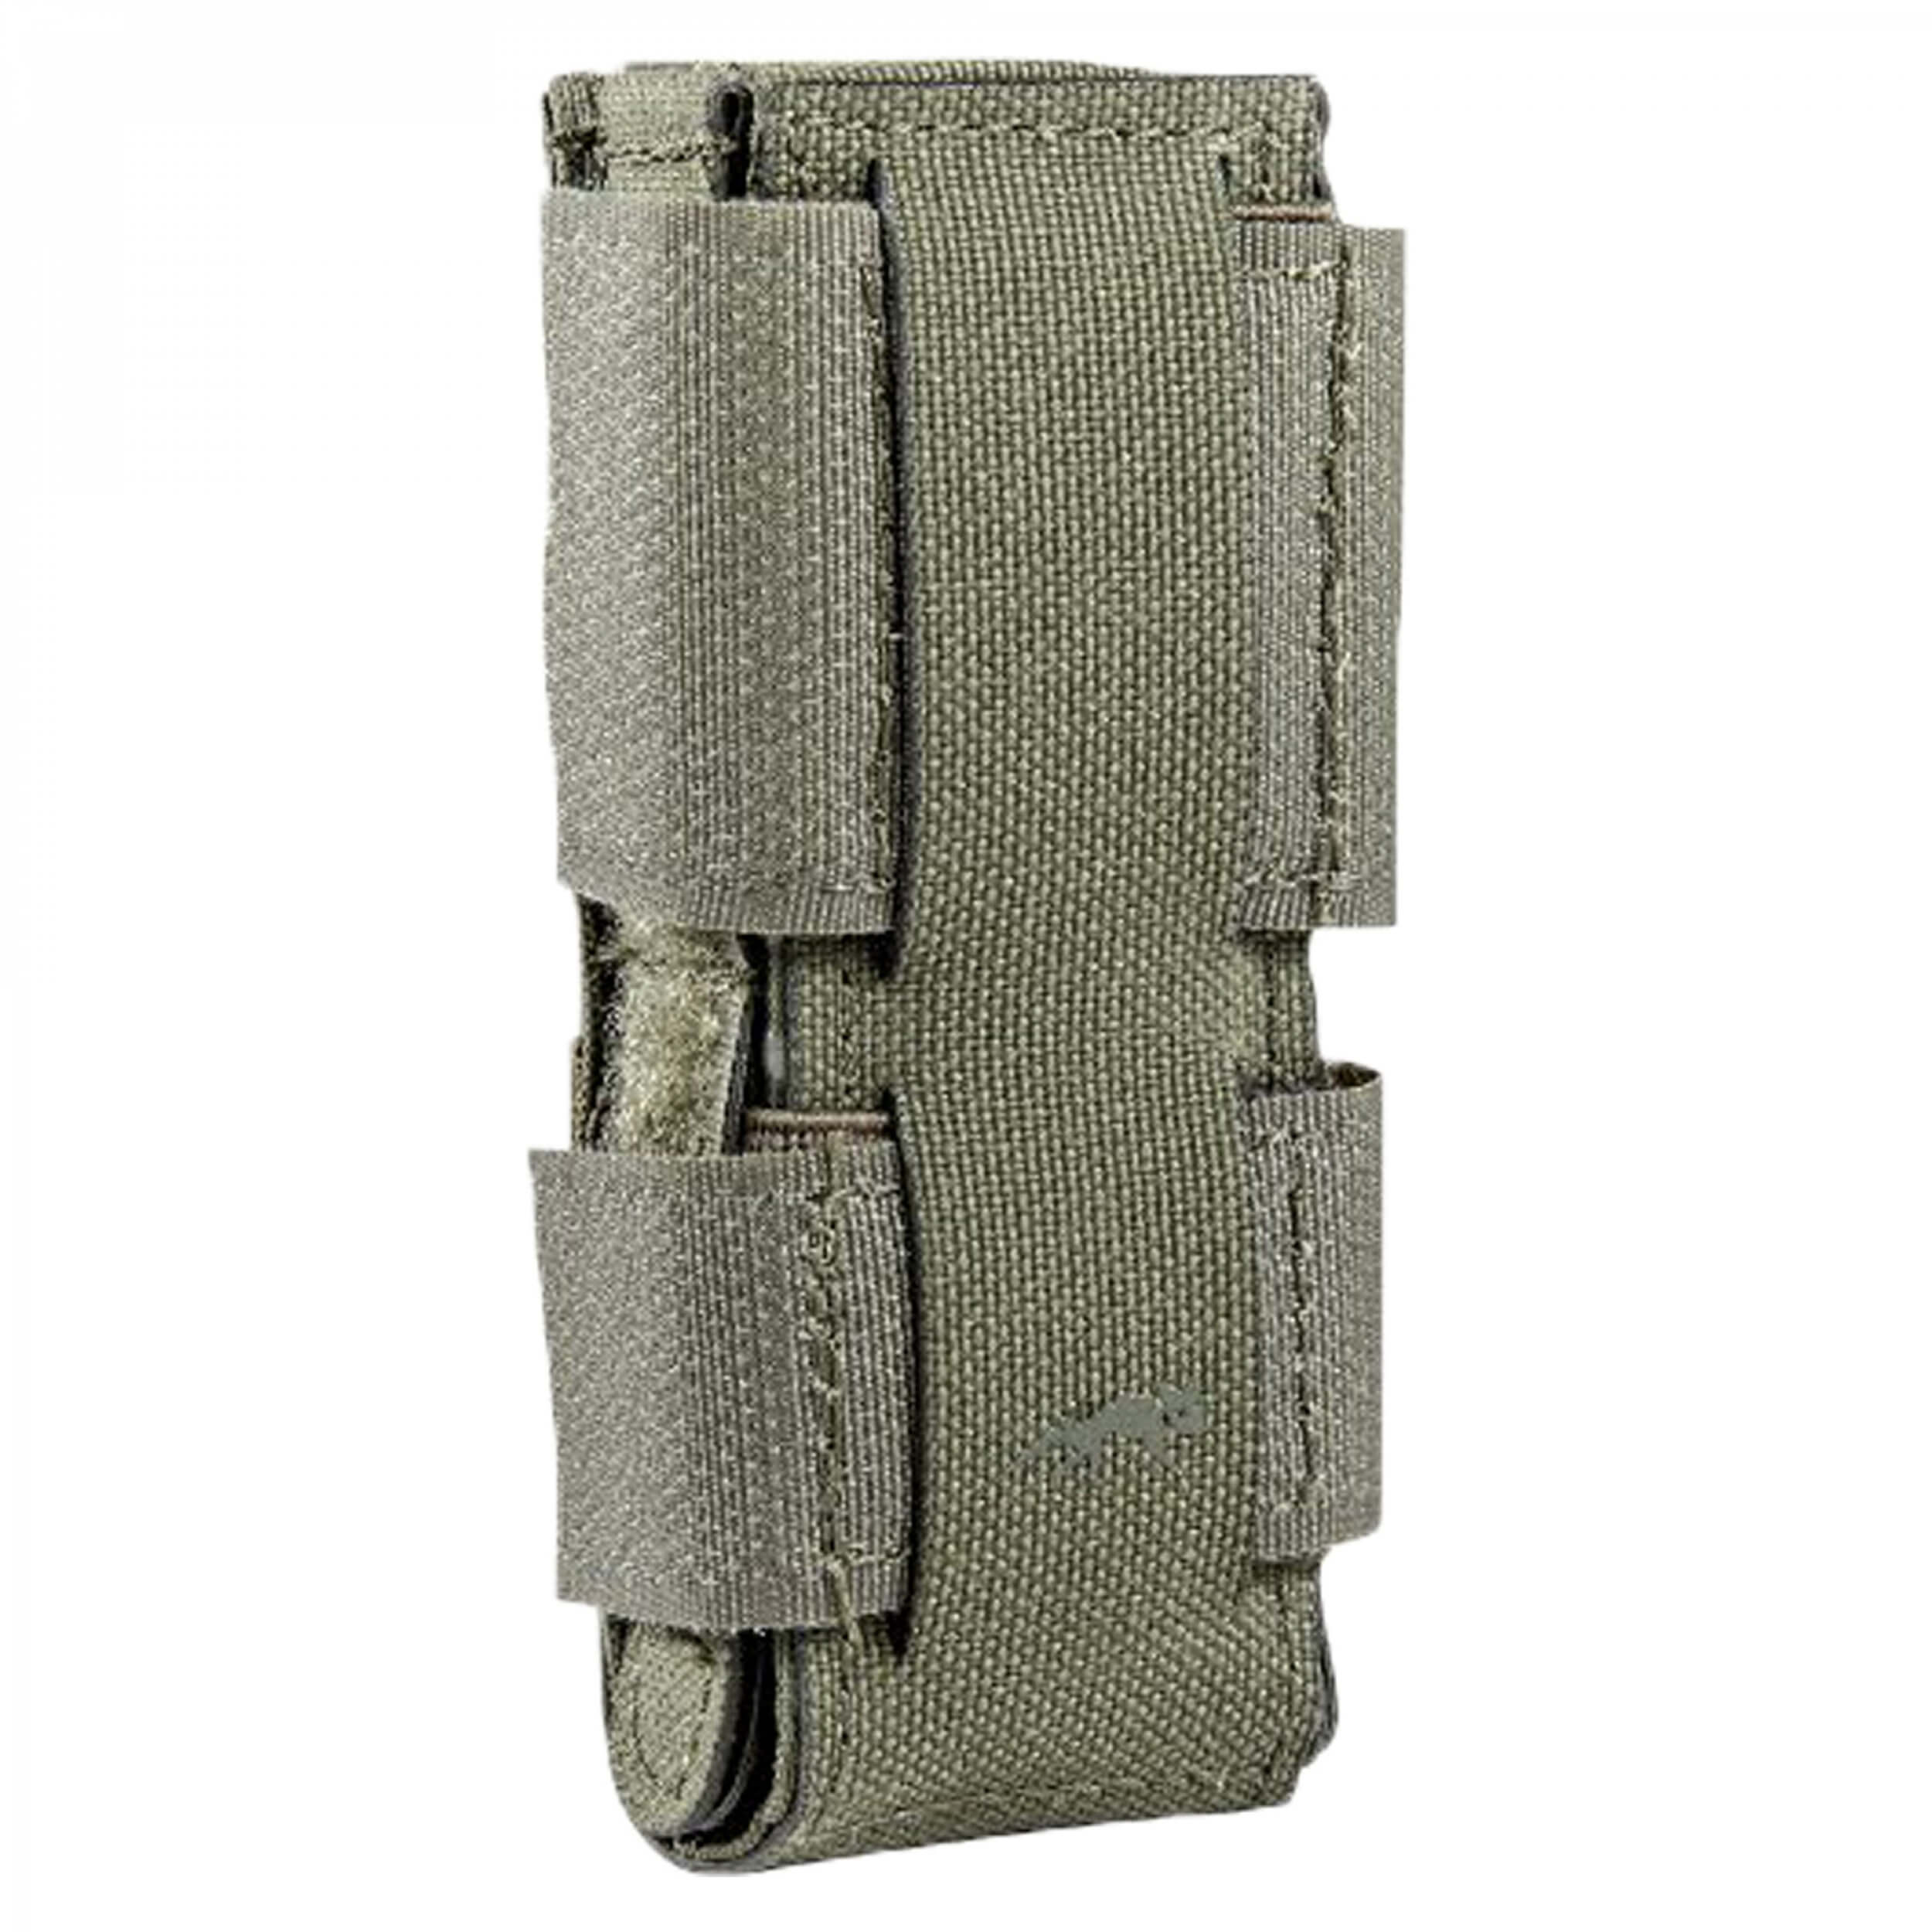 Tasmanian Tiger SGL PI Mag Pouch MCL olive